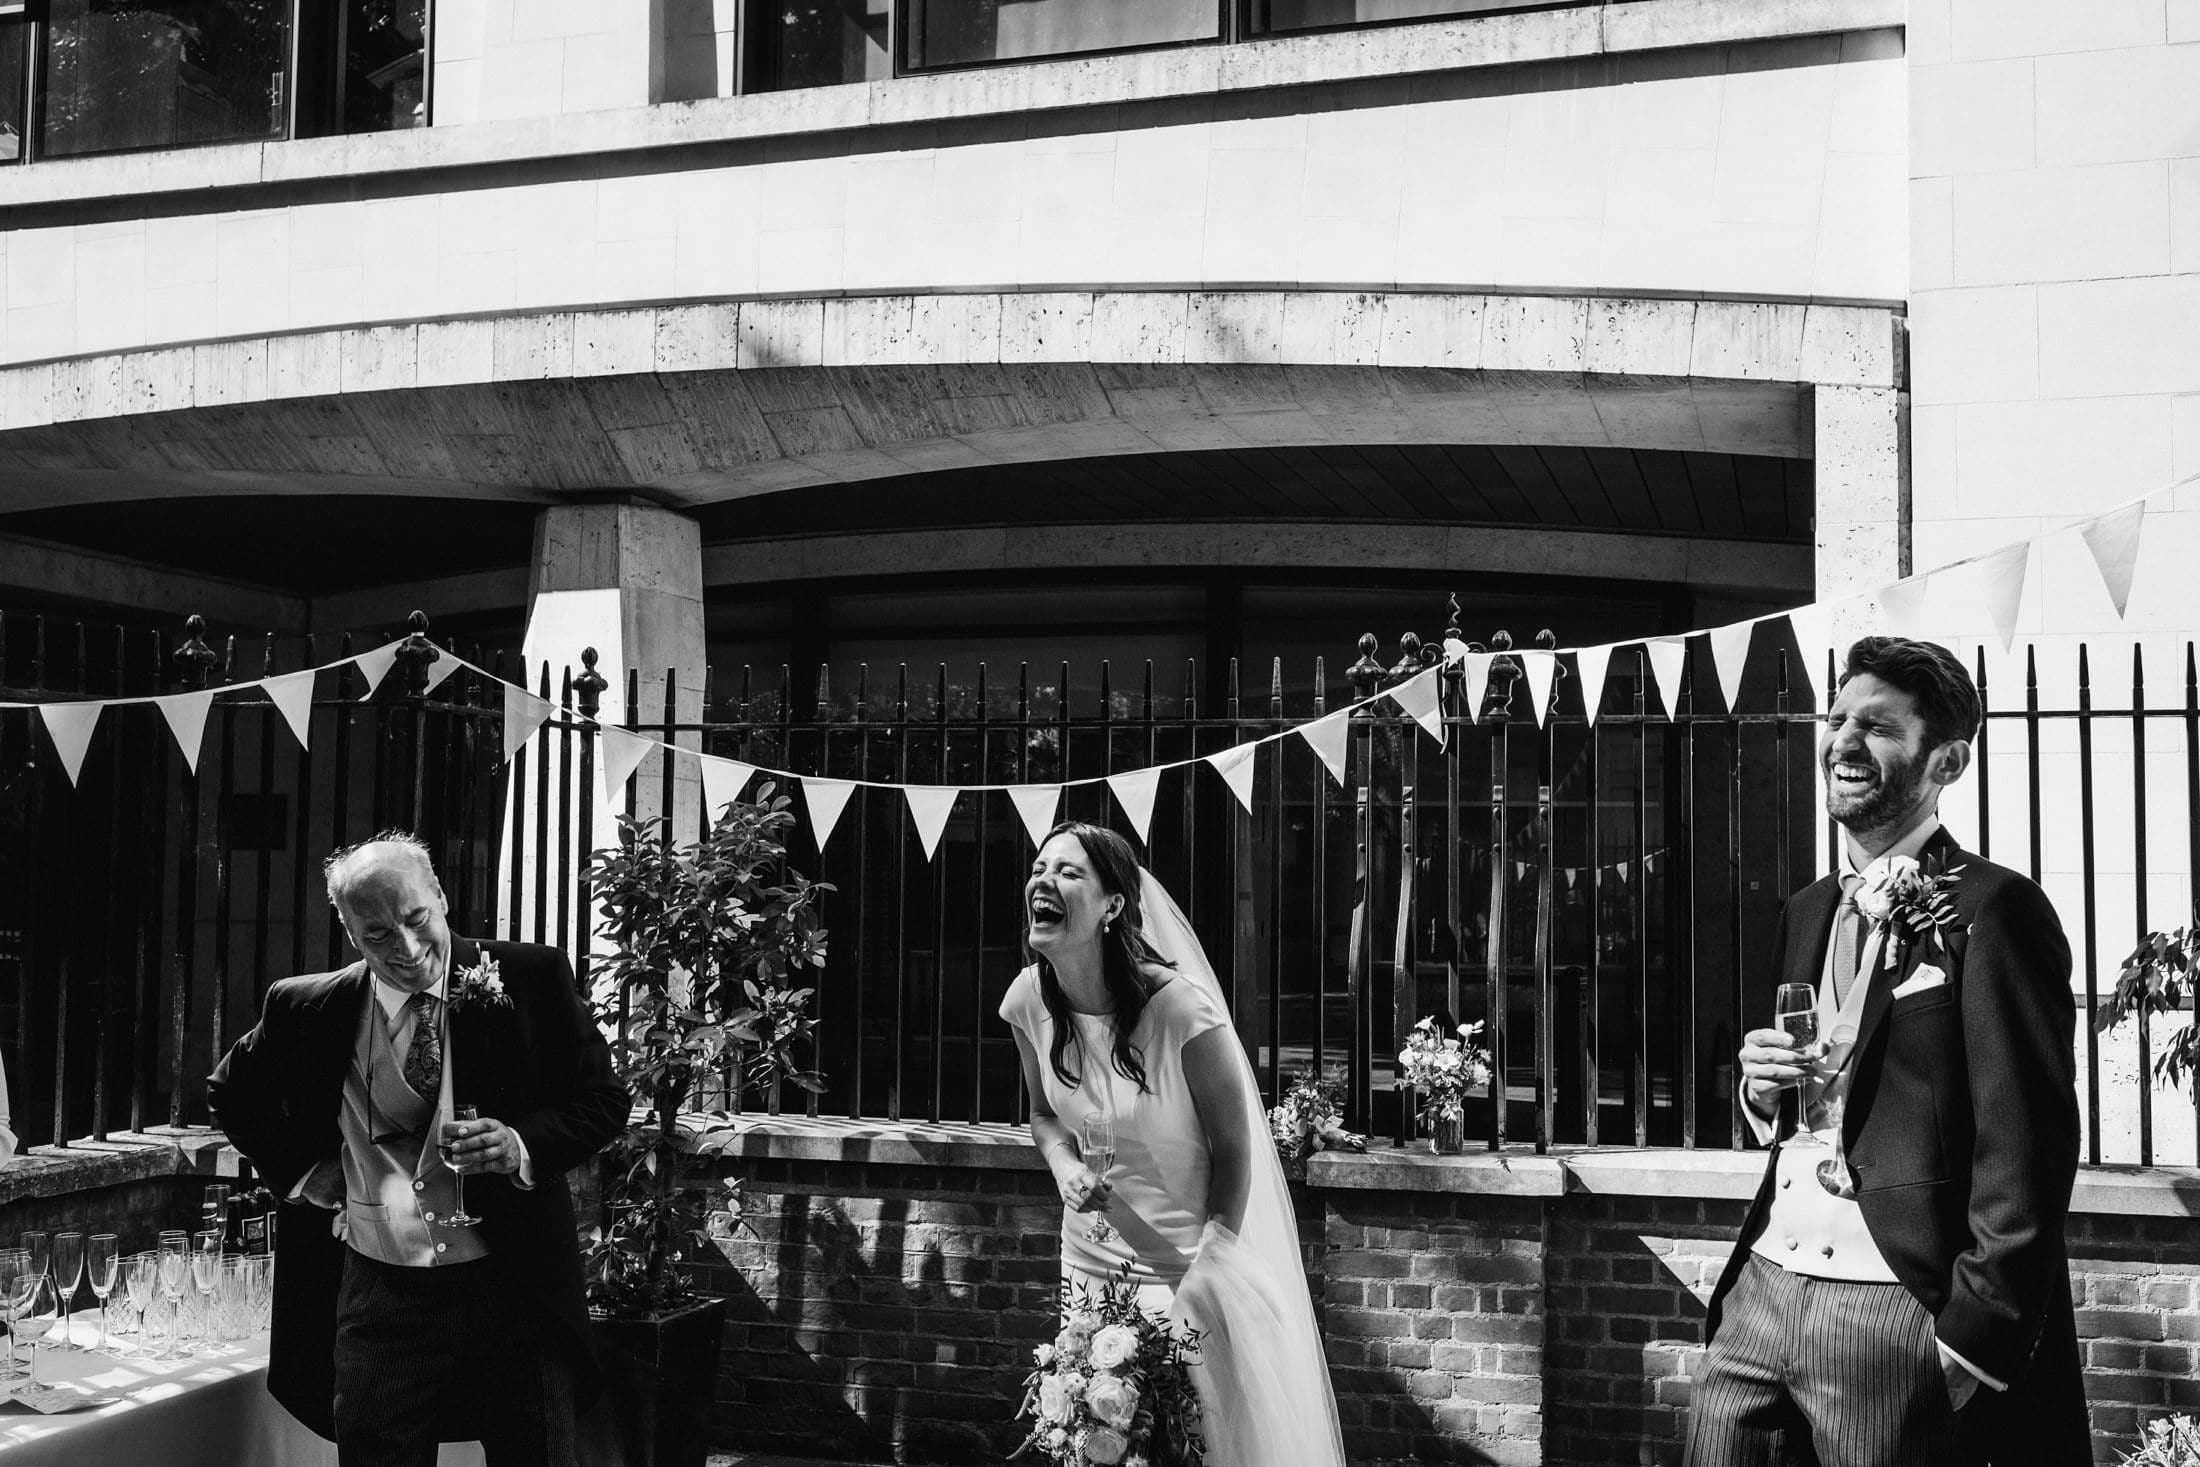 Bride, groom and father of the bride laugh hysterically during wedding speeches in Greyfriar's passage. Monochrome wedding photograph